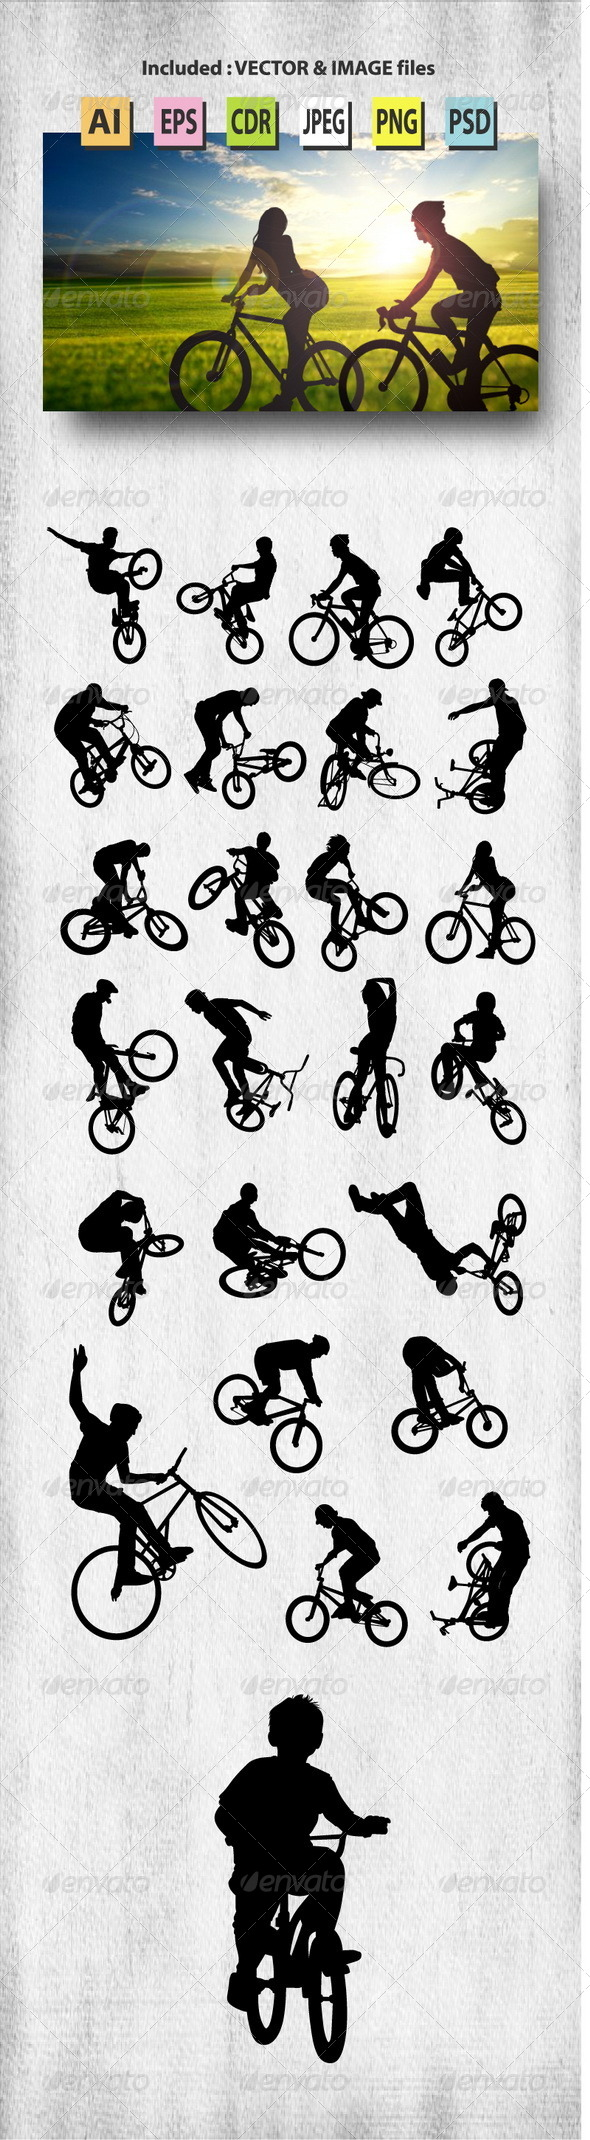 GraphicRiver Bike Rider Silhouettes 8371638